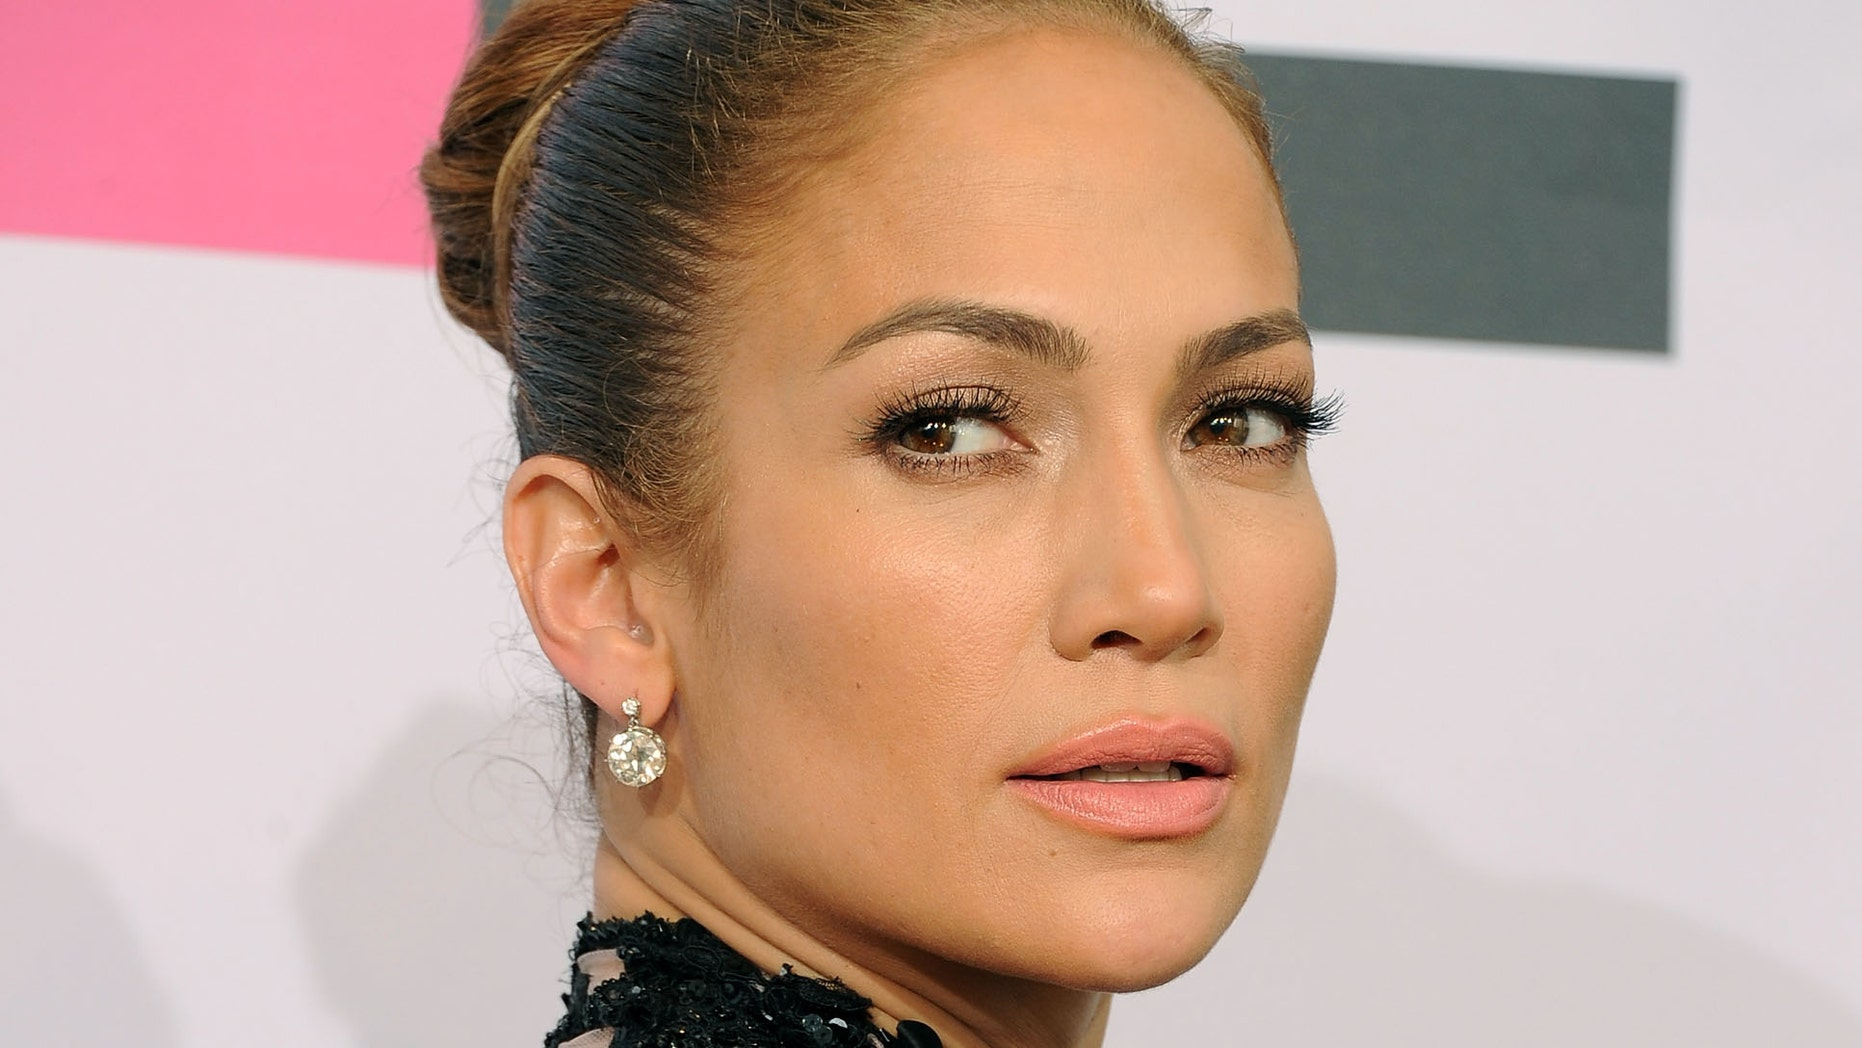 LOS ANGELES, CA - NOVEMBER 20:  Singer Jennifer Lopez, winner of Favorite Latin Artist Award, poses in the press room at the 2011 American Music Awards held at Nokia Theatre L.A. LIVE on November 20, 2011 in Los Angeles, California.  (Photo by Jason Merritt/Getty Images)